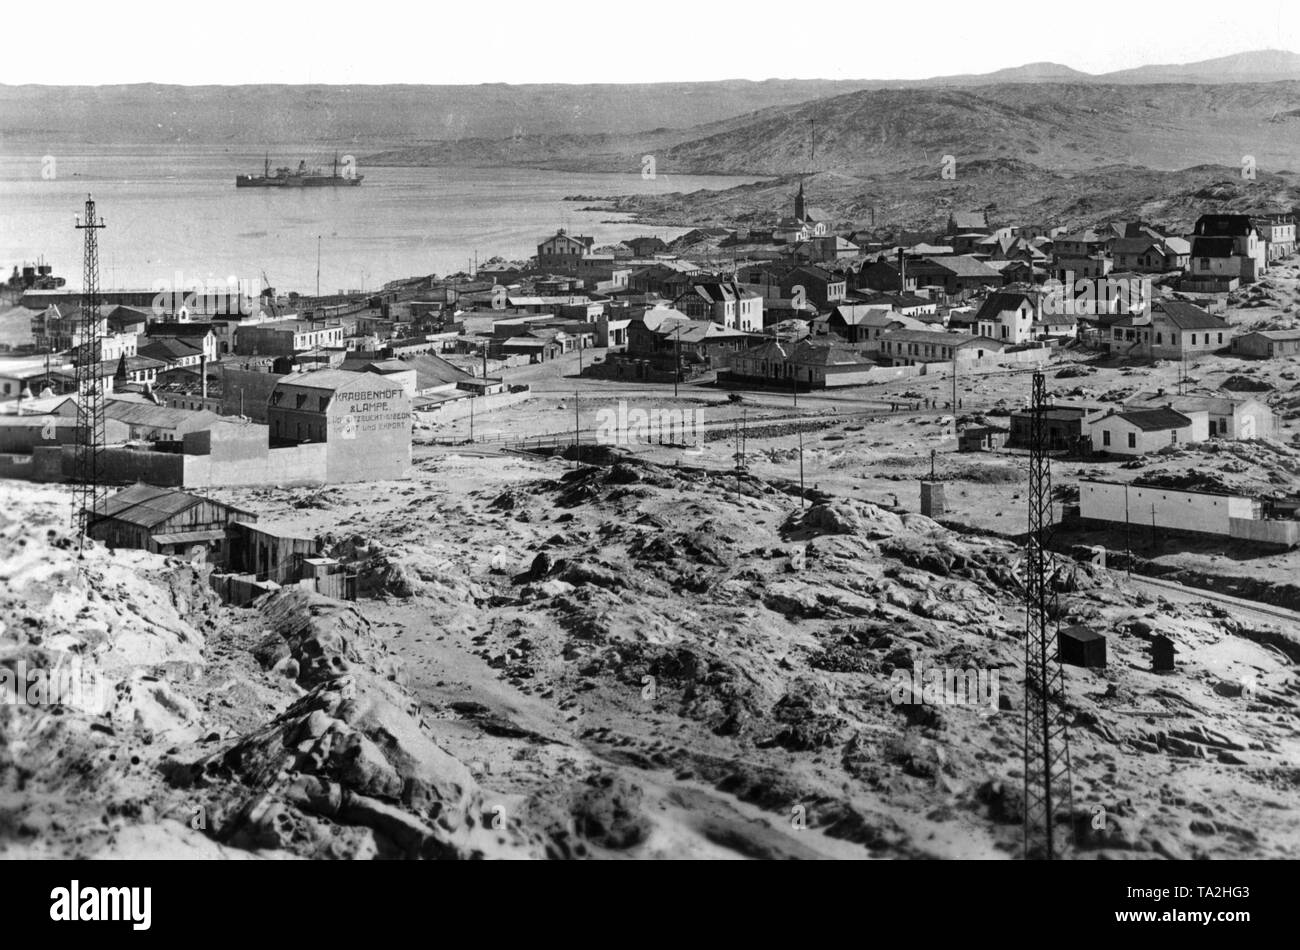 View from the interior to the coastal town of Luederitz Bay, the former German colony of German South West Africa. In the background is the sea. - Stock Image